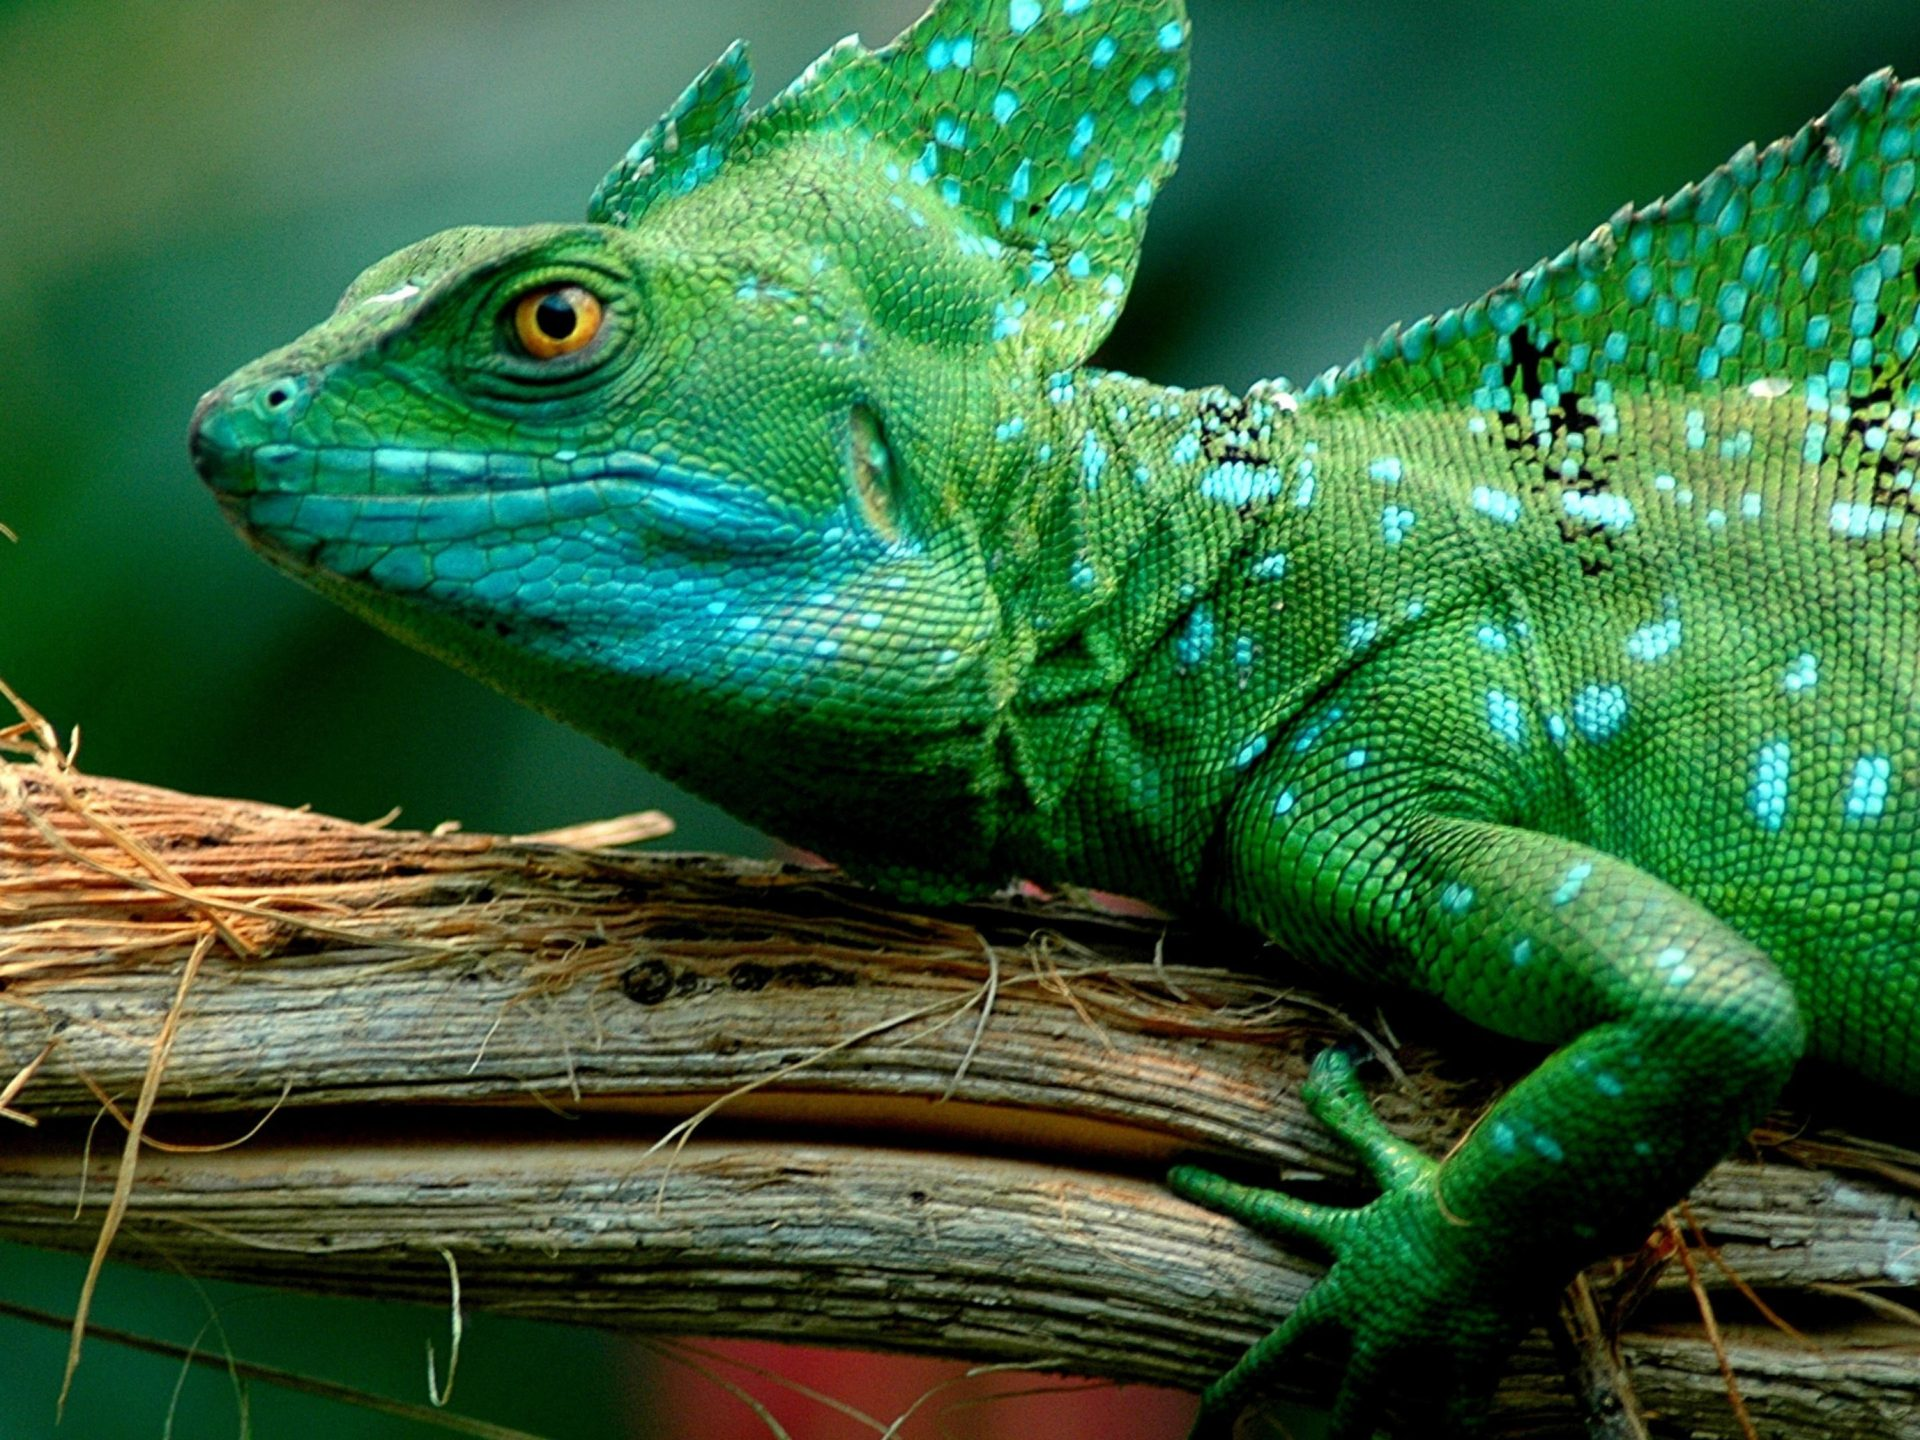 3d Grass Wallpaper Animals Green Basilisk Lizard Desktop Wallpaper Full